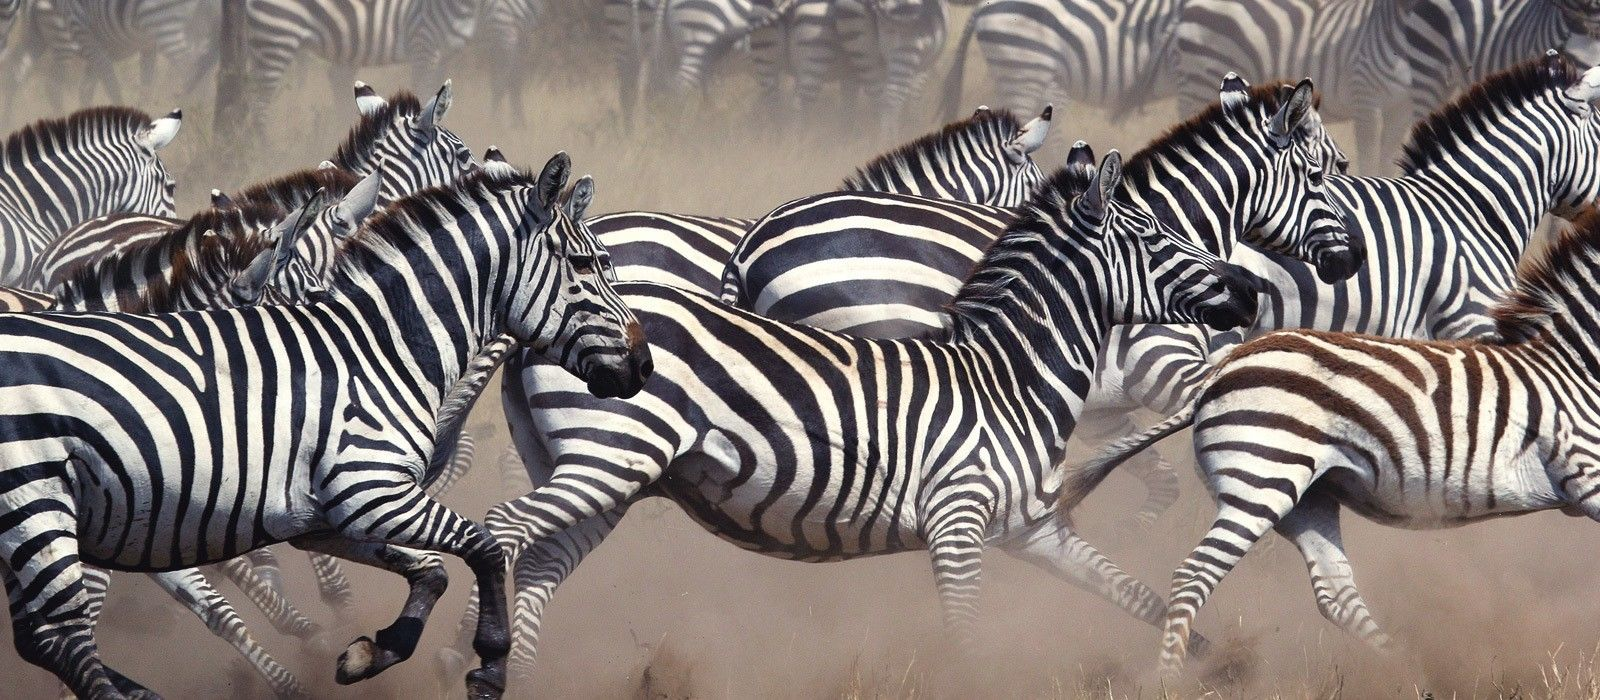 tanzania-and-botswana-safari-highlights-tour-trip-4.jpg